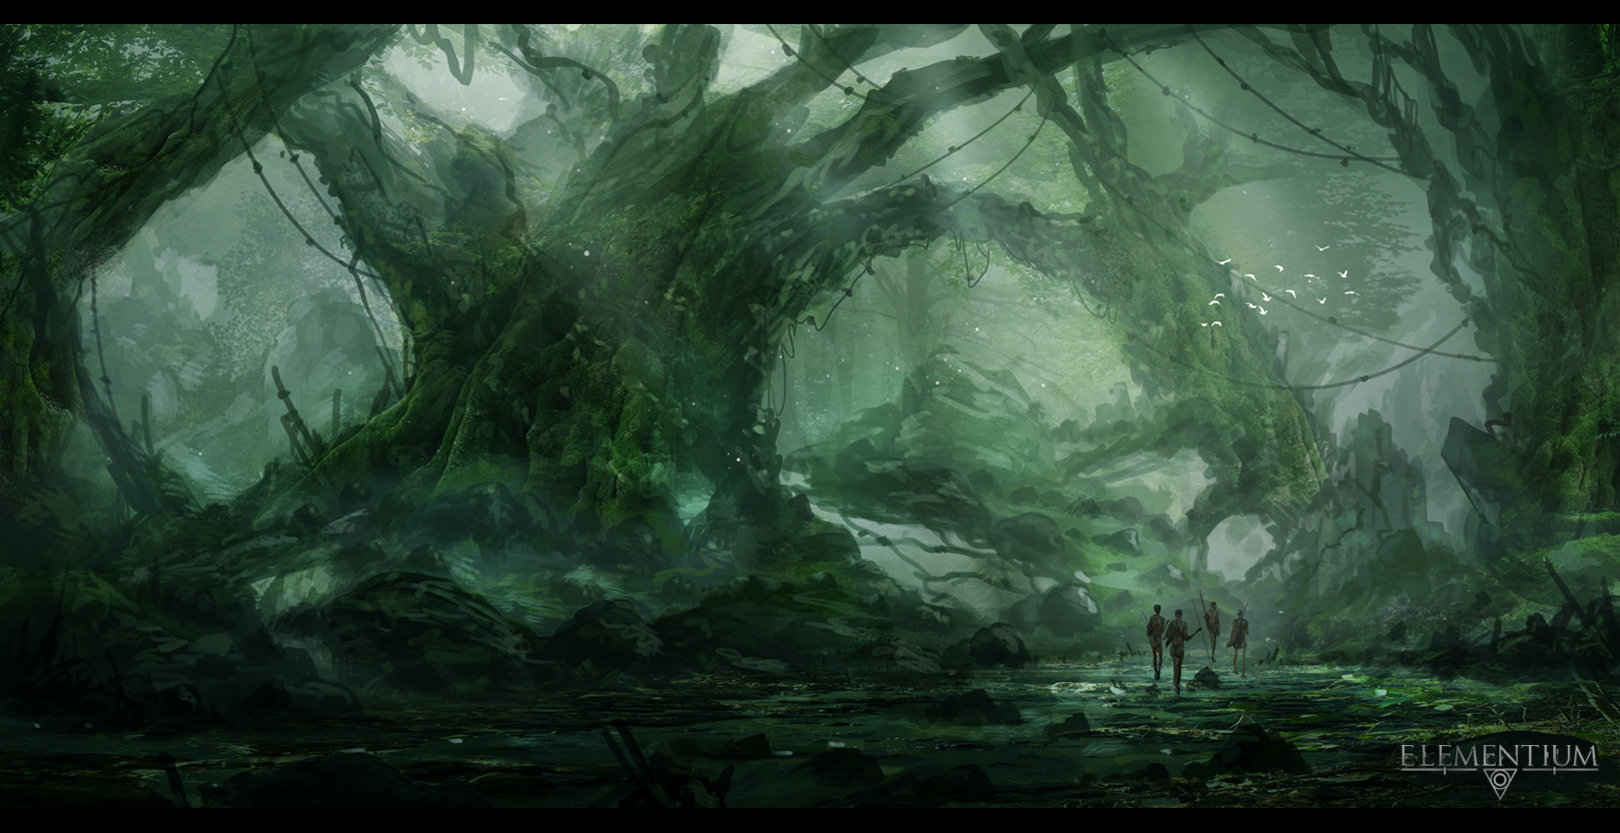 Project Elementium - Forest Tribe